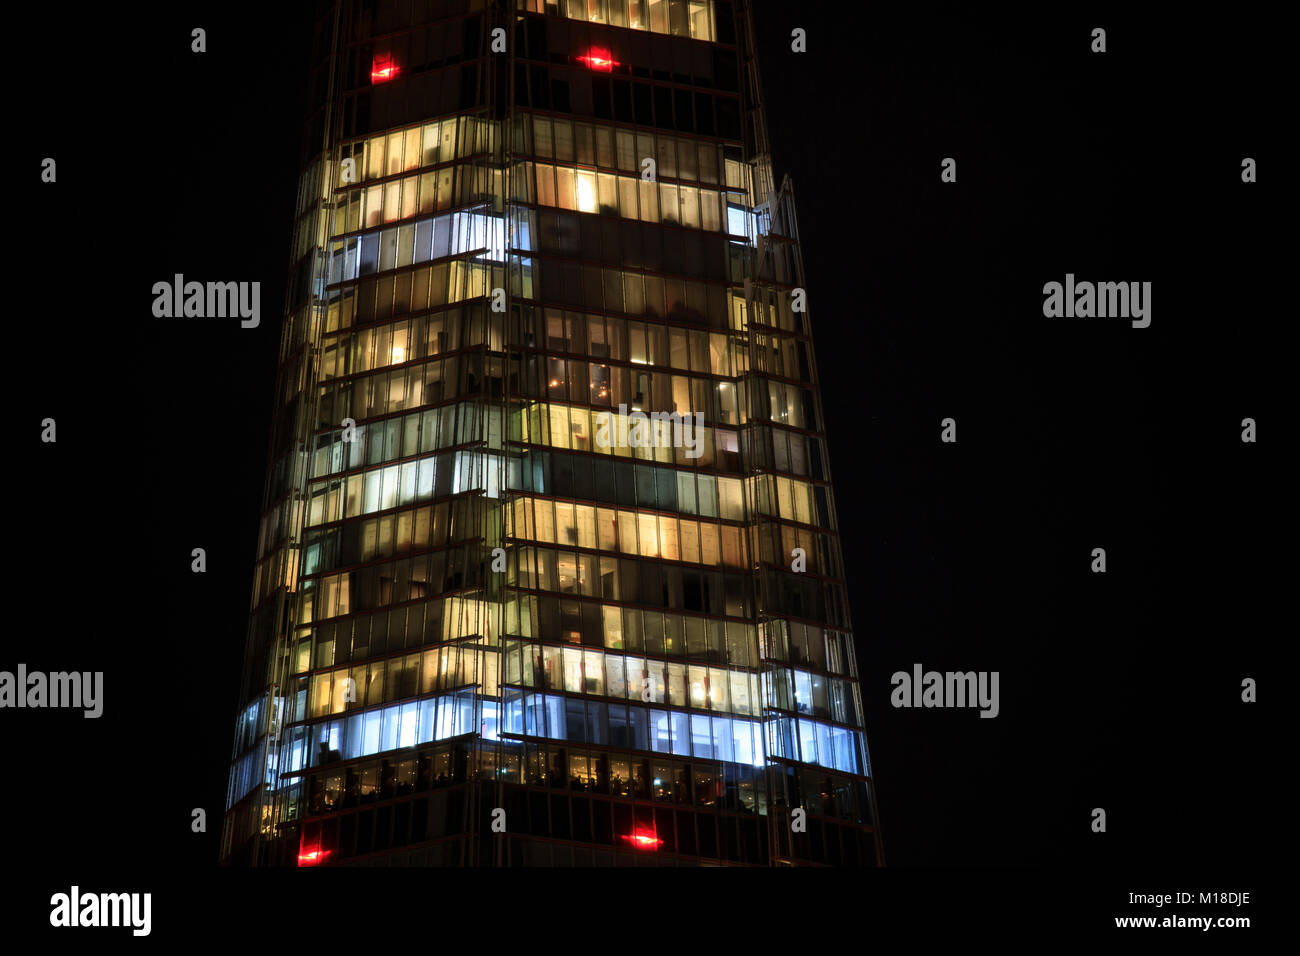 Detail of The Shard in London, England. Stock Photo